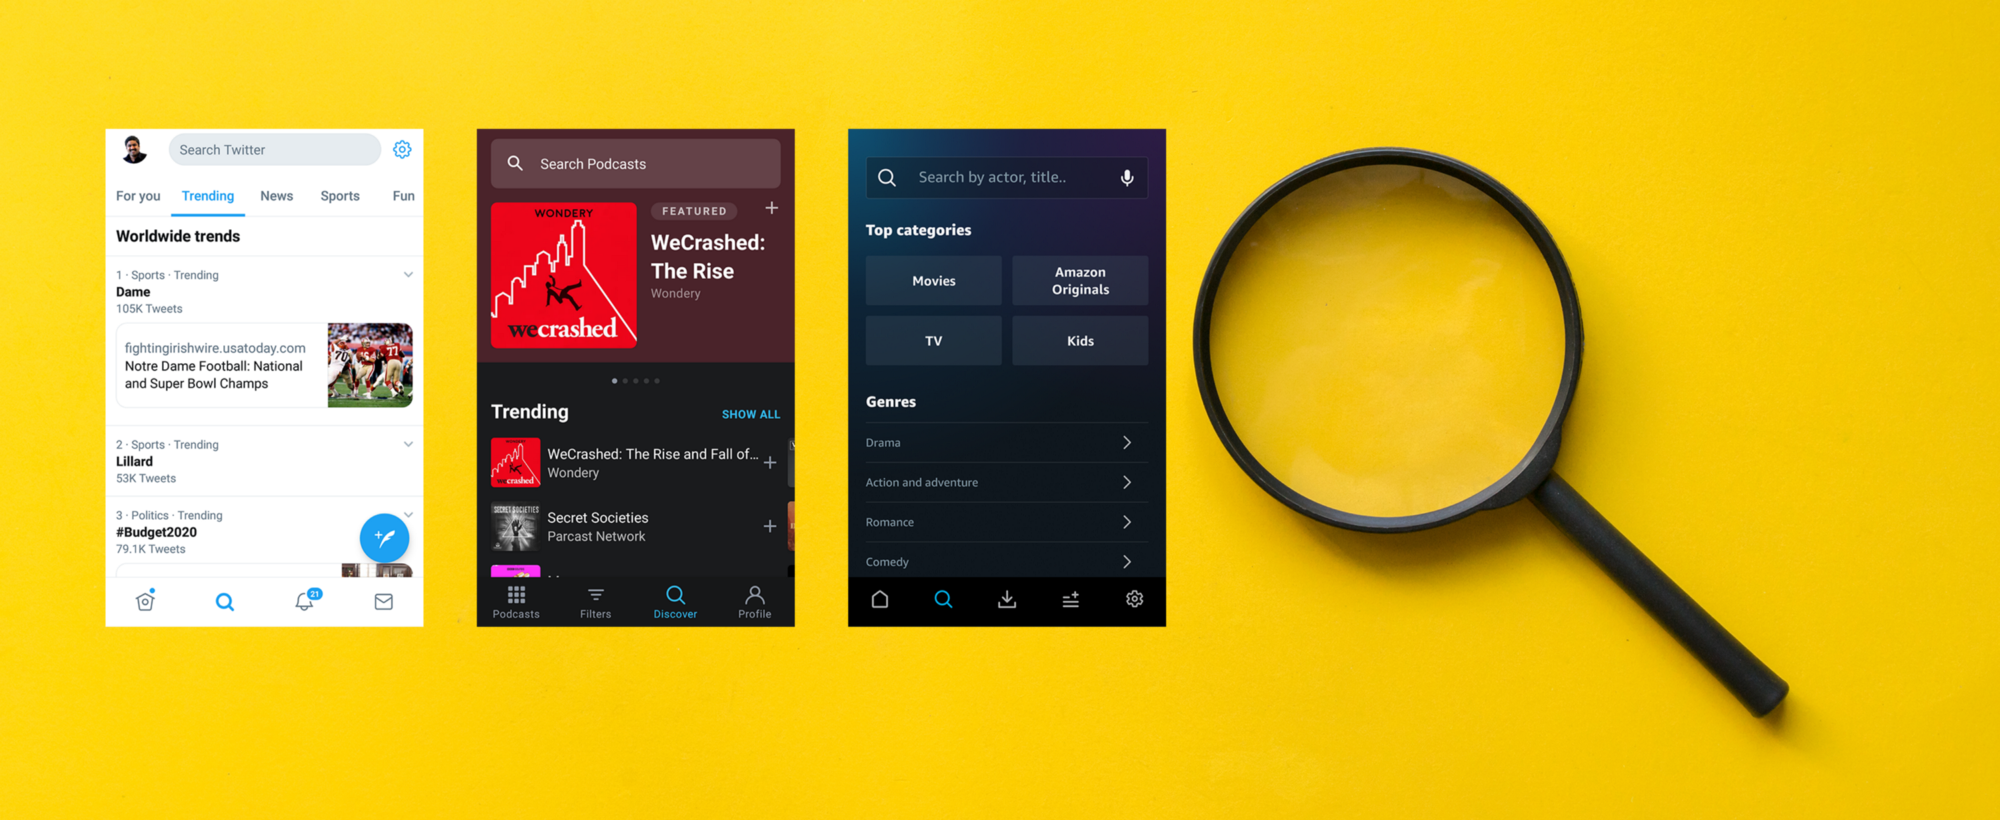 Twitter, Pocket Casts, Amazon Prime Video Android App screens along with a Magnifying Glass on a yellow background.